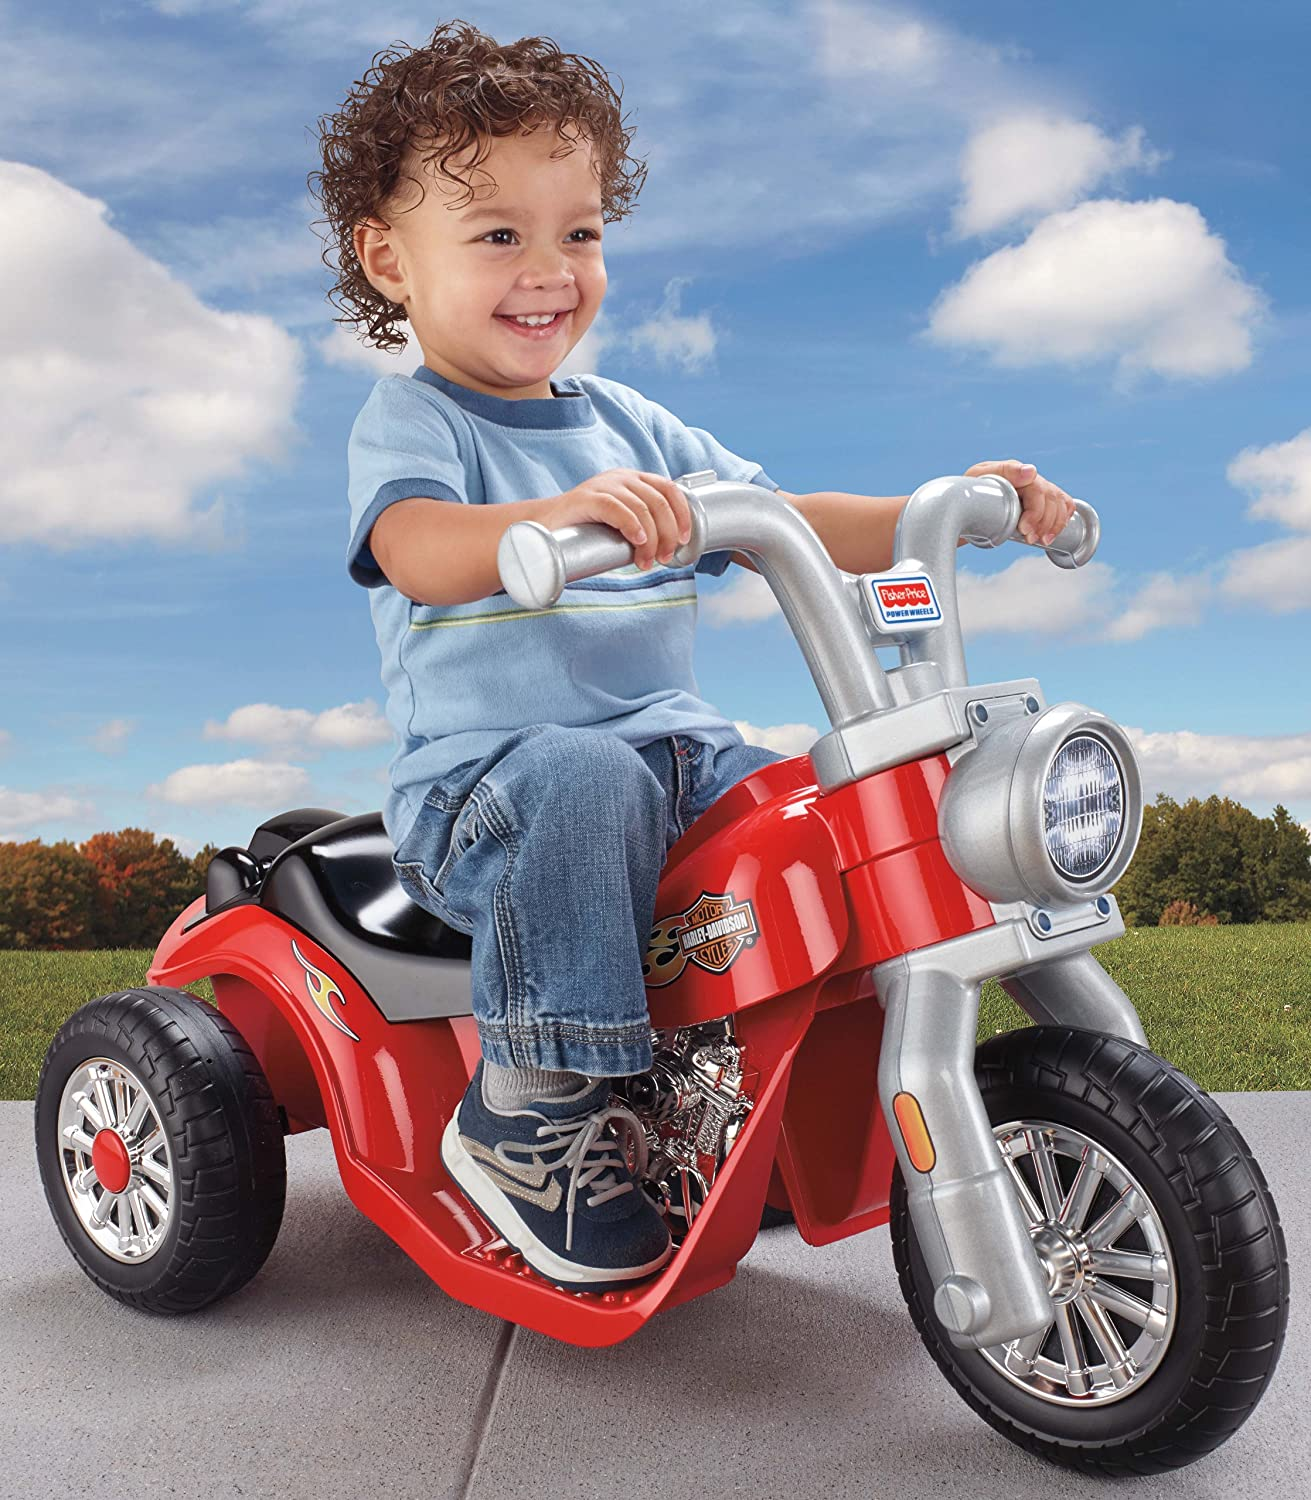 Amazon.com: Power Wheels Lil Harley: Toys & Games